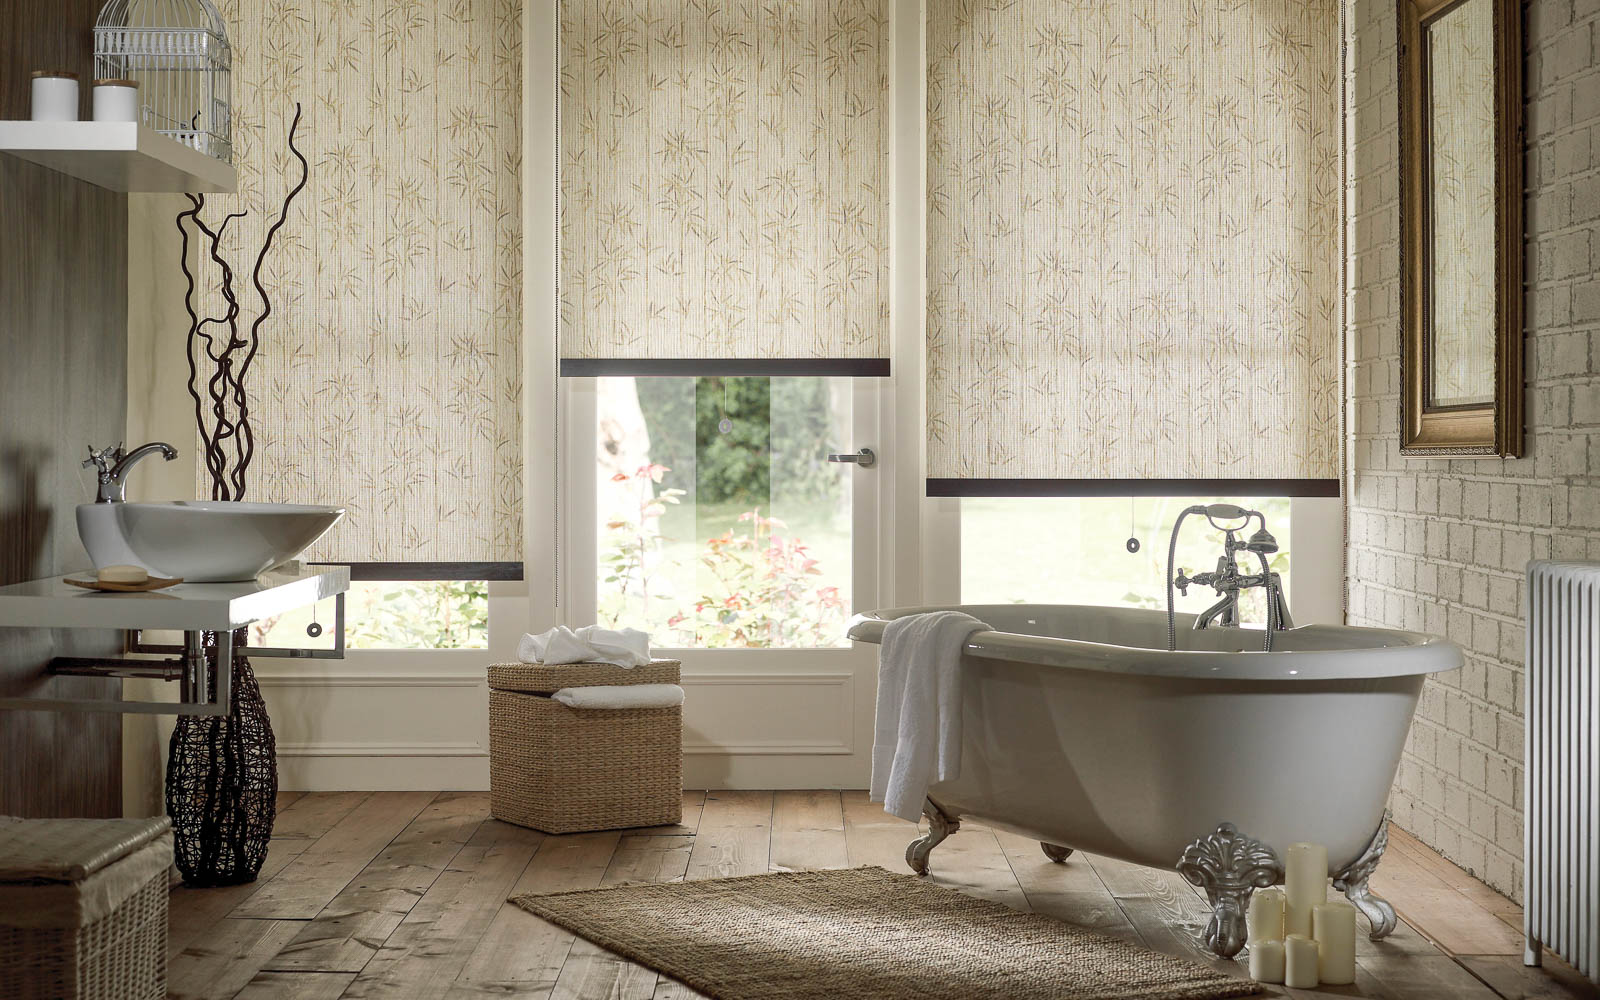 Patterned roller blinds in a bathroom